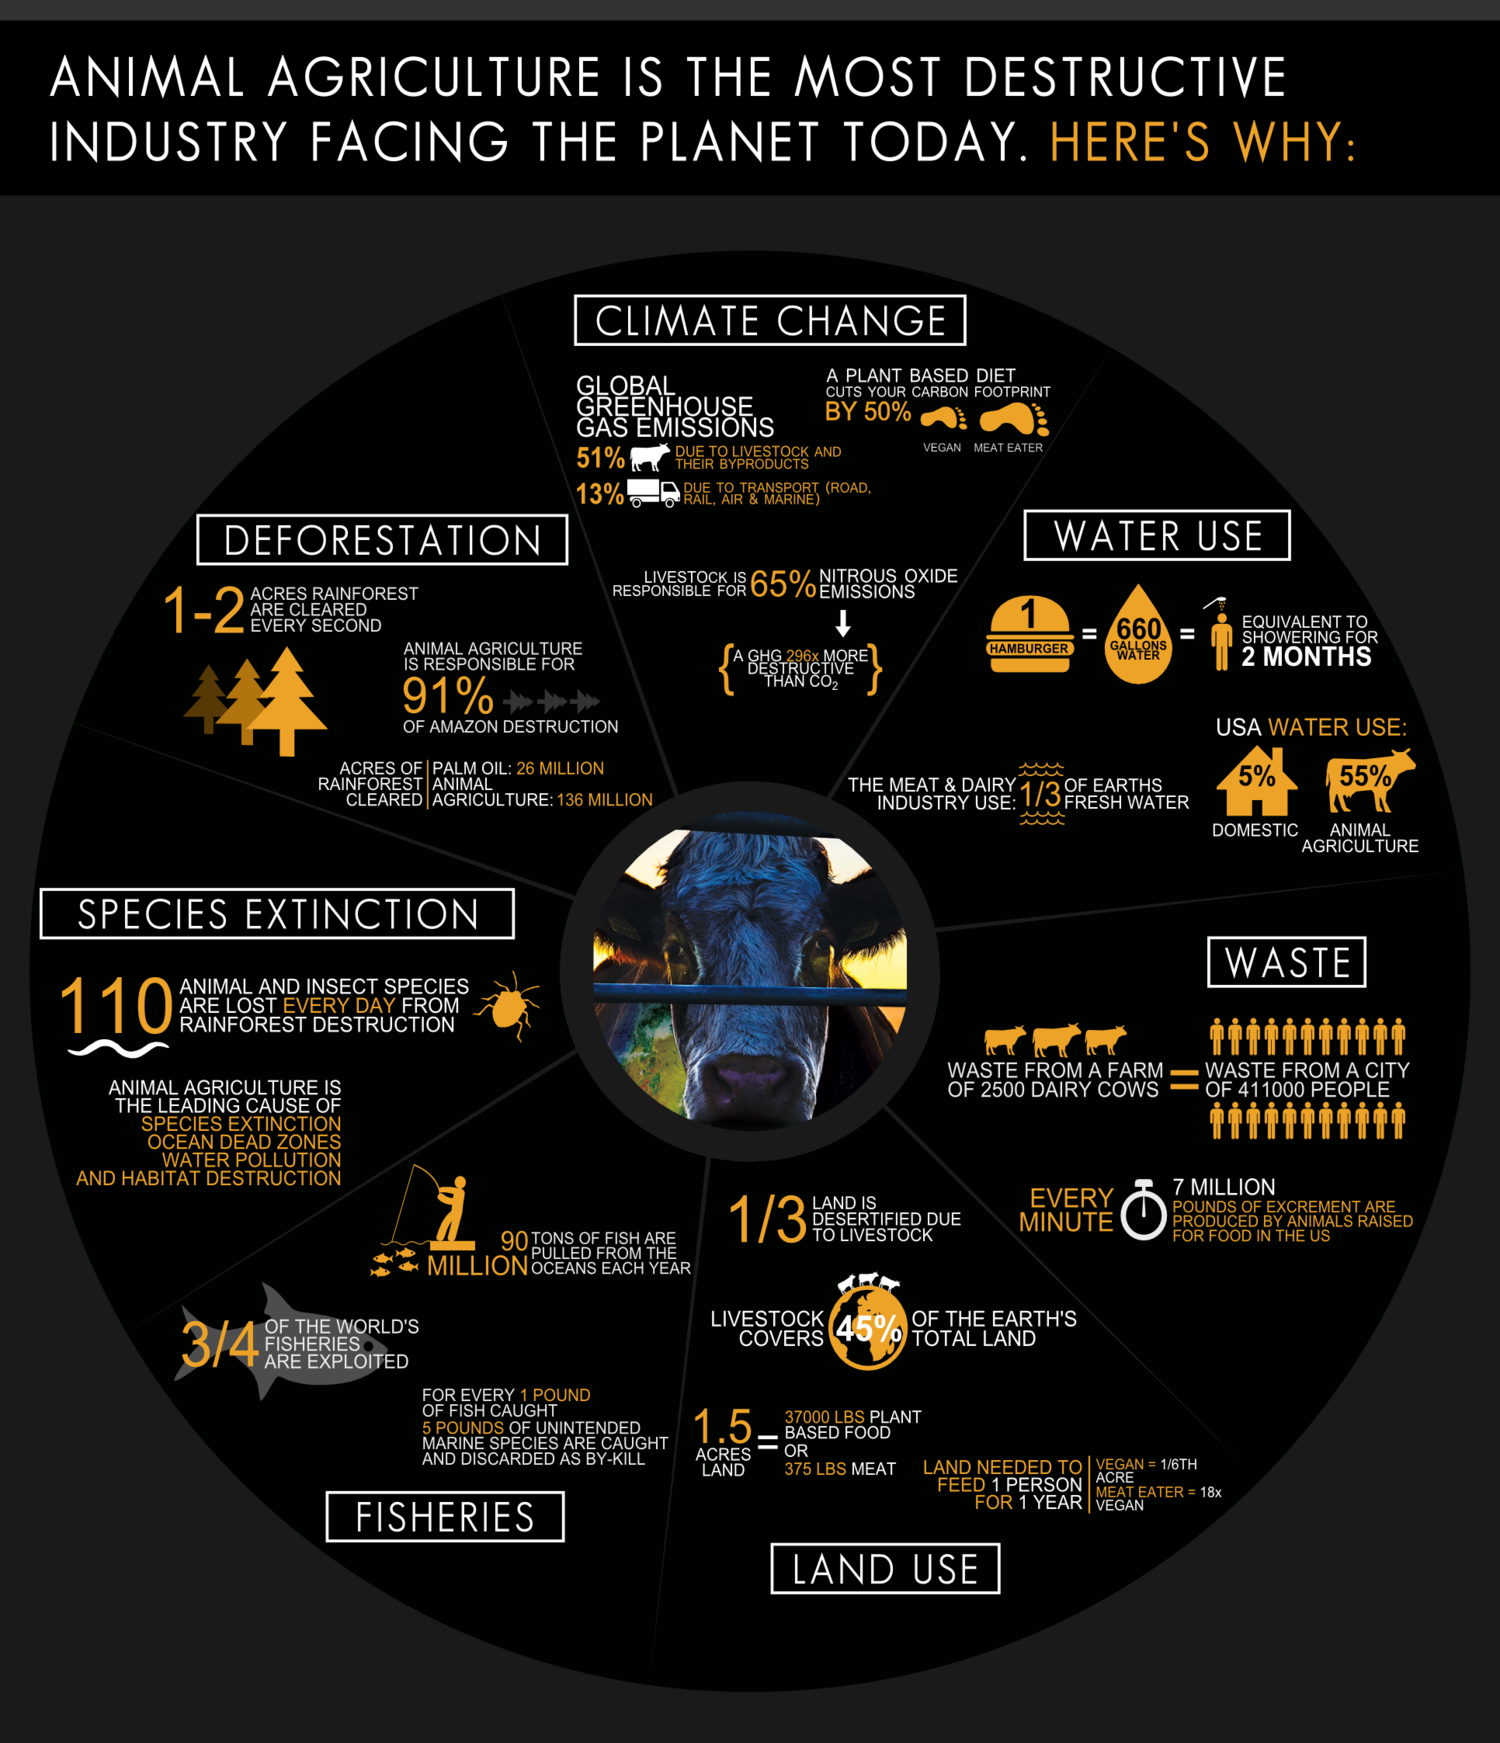 Image source: http://www.cowspiracy.com/infographic